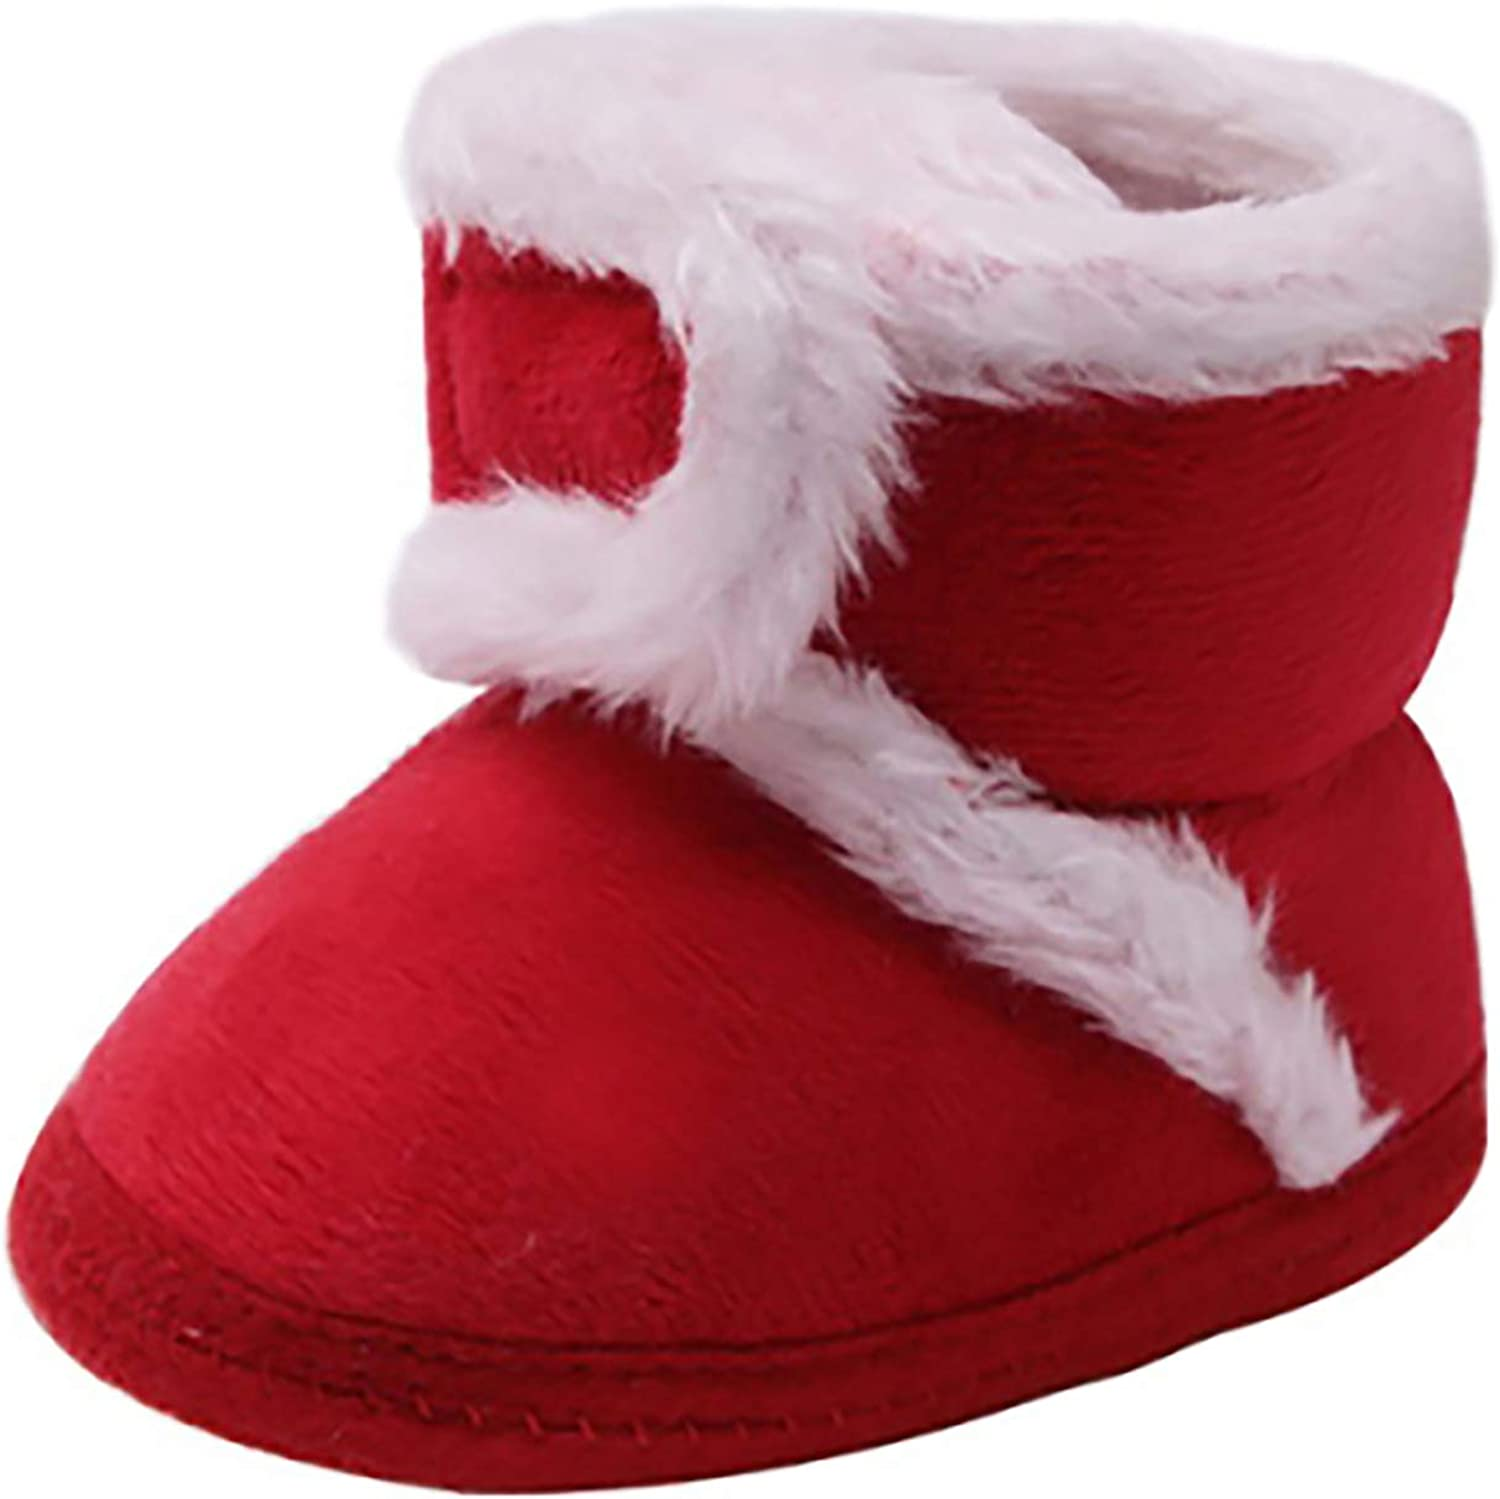 Meeshine Newborn Baby Boys Girls Santa Claus Christmas Slippers Warm Fur Infant Toddler Boots Booties Shoes